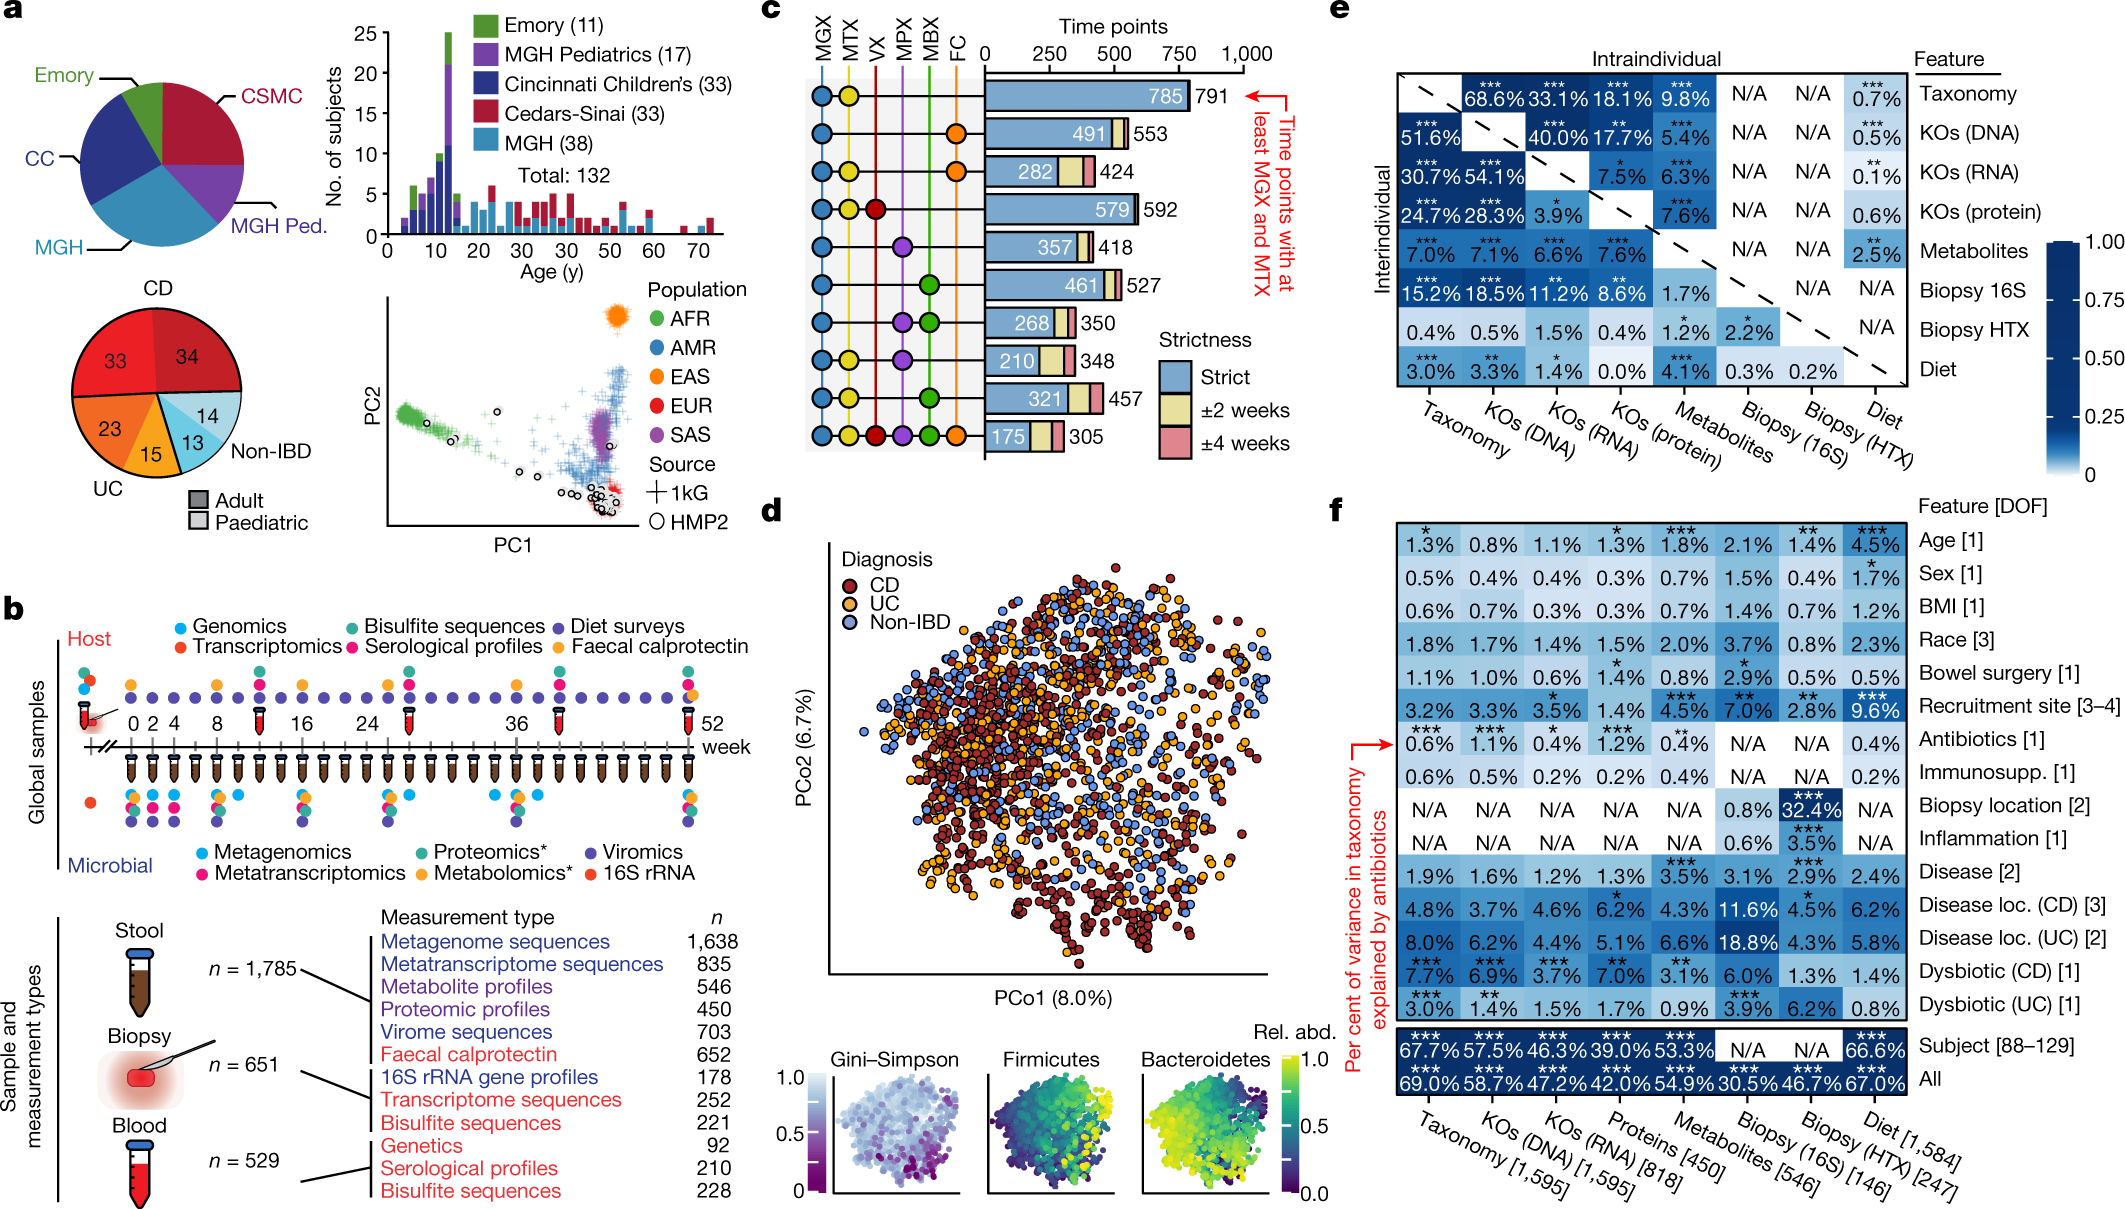 Multi-omics of the gut microbial ecosystem in inflammatory